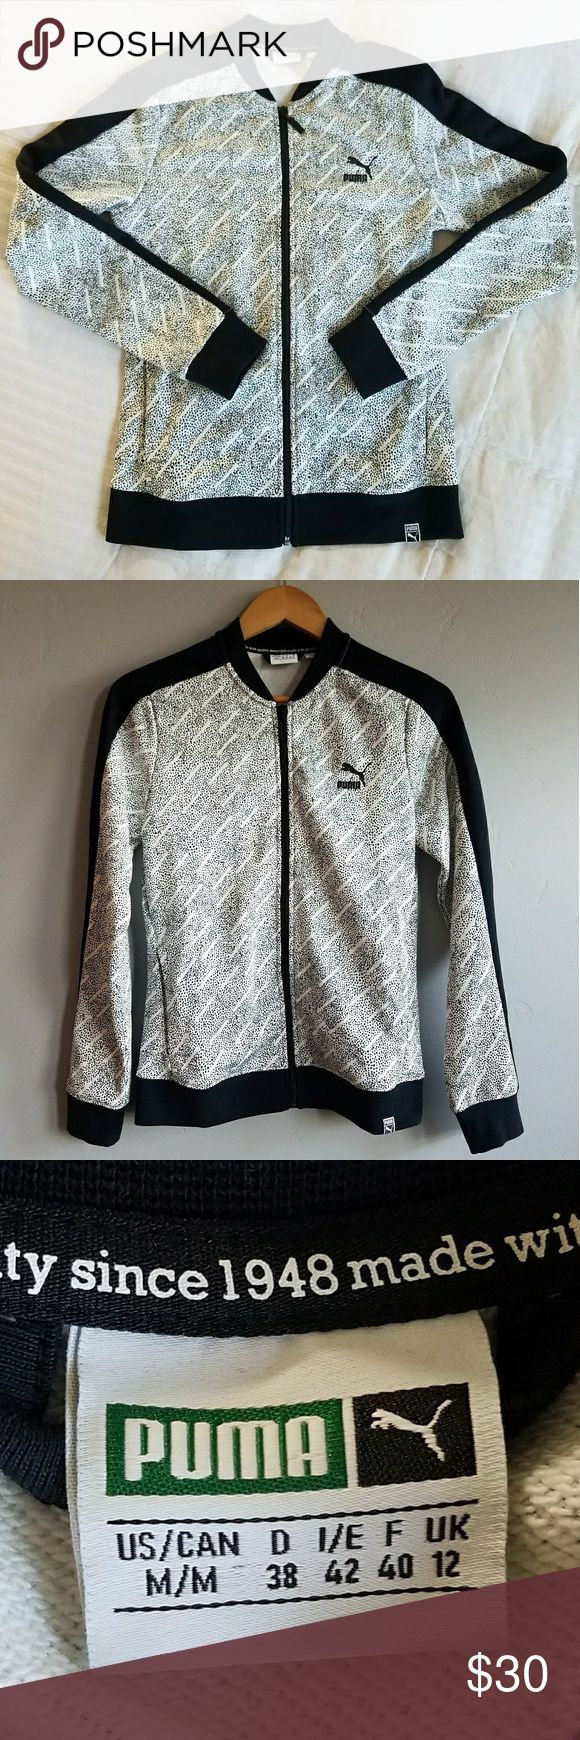 PUMA zip up Track Jacket Women's zip up Track Jacket with pockets. Featuring a really cool black and white speckled design. Size Small although tag says medium. Worn one time. In great shape. Puma Jackets & Coats Utility Jackets